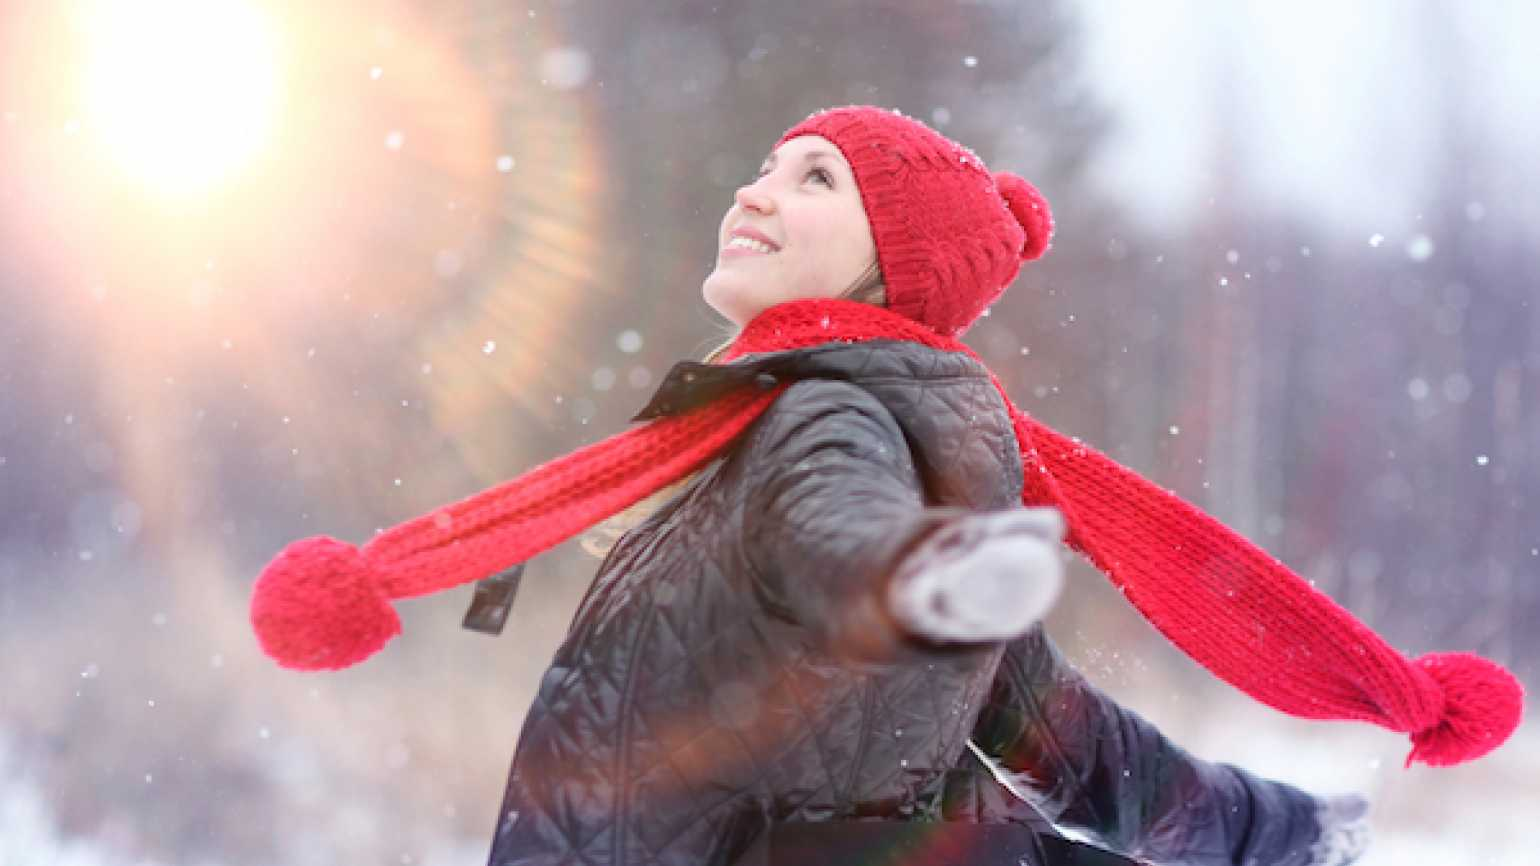 Make the most of the gift of life, urges Guideposts blogger Pablo Diaz.